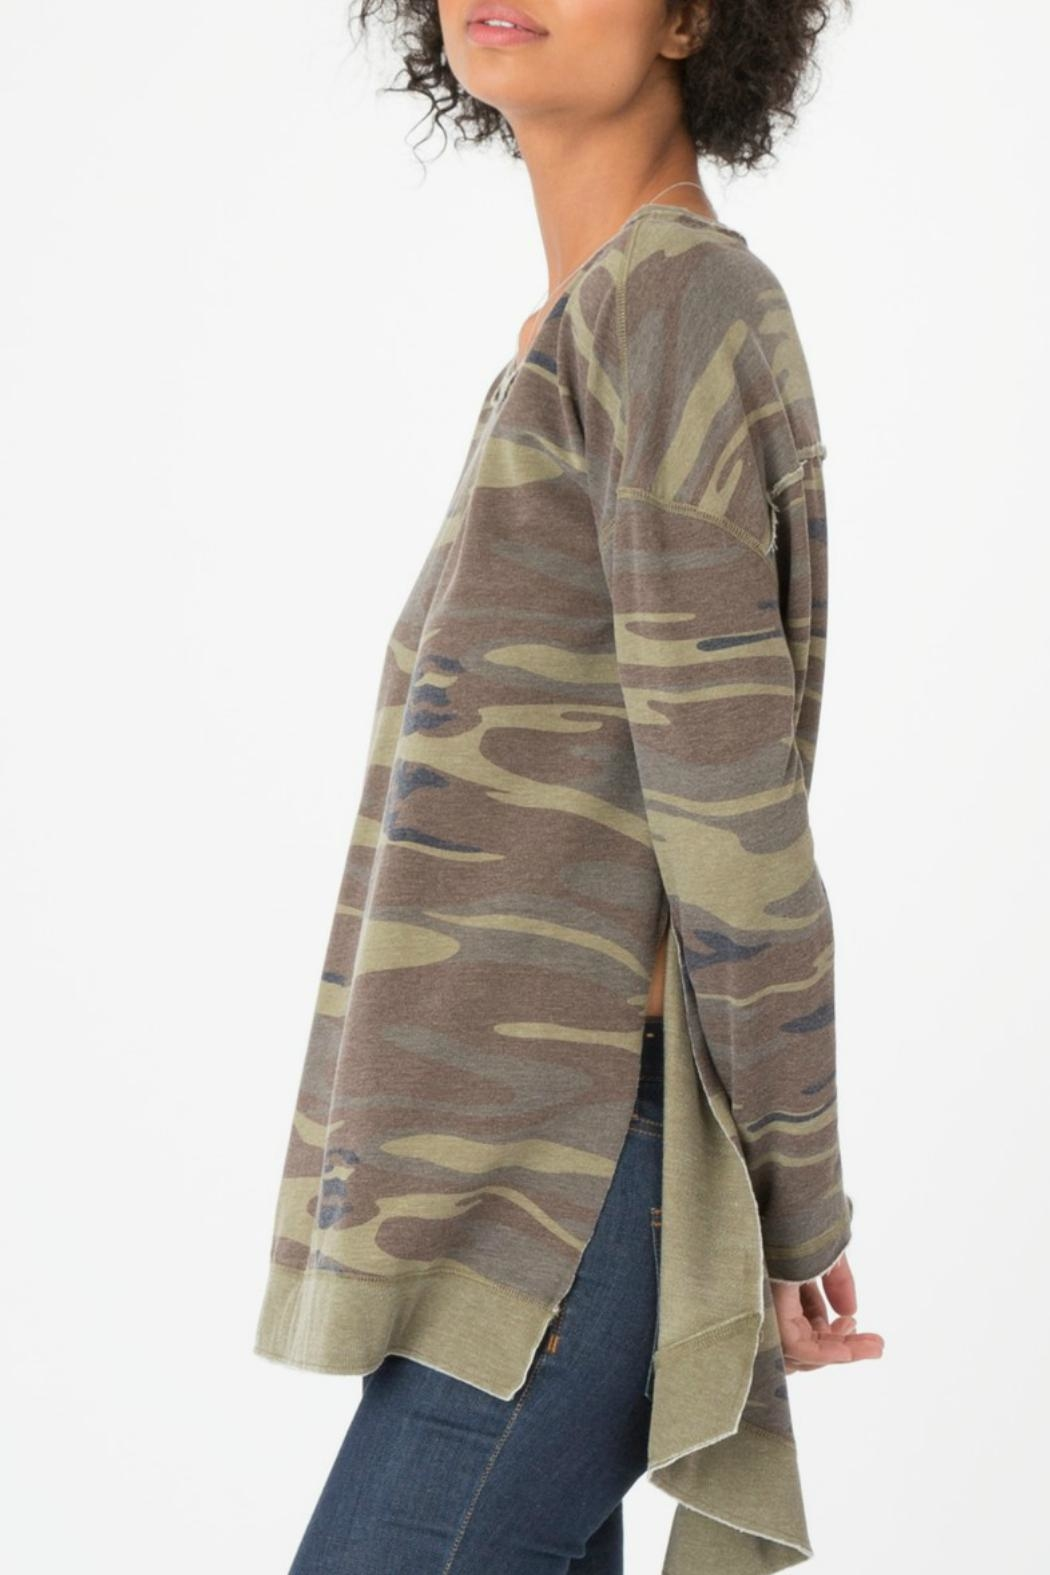 z supply Camo Weekender Pullover - Front Full Image